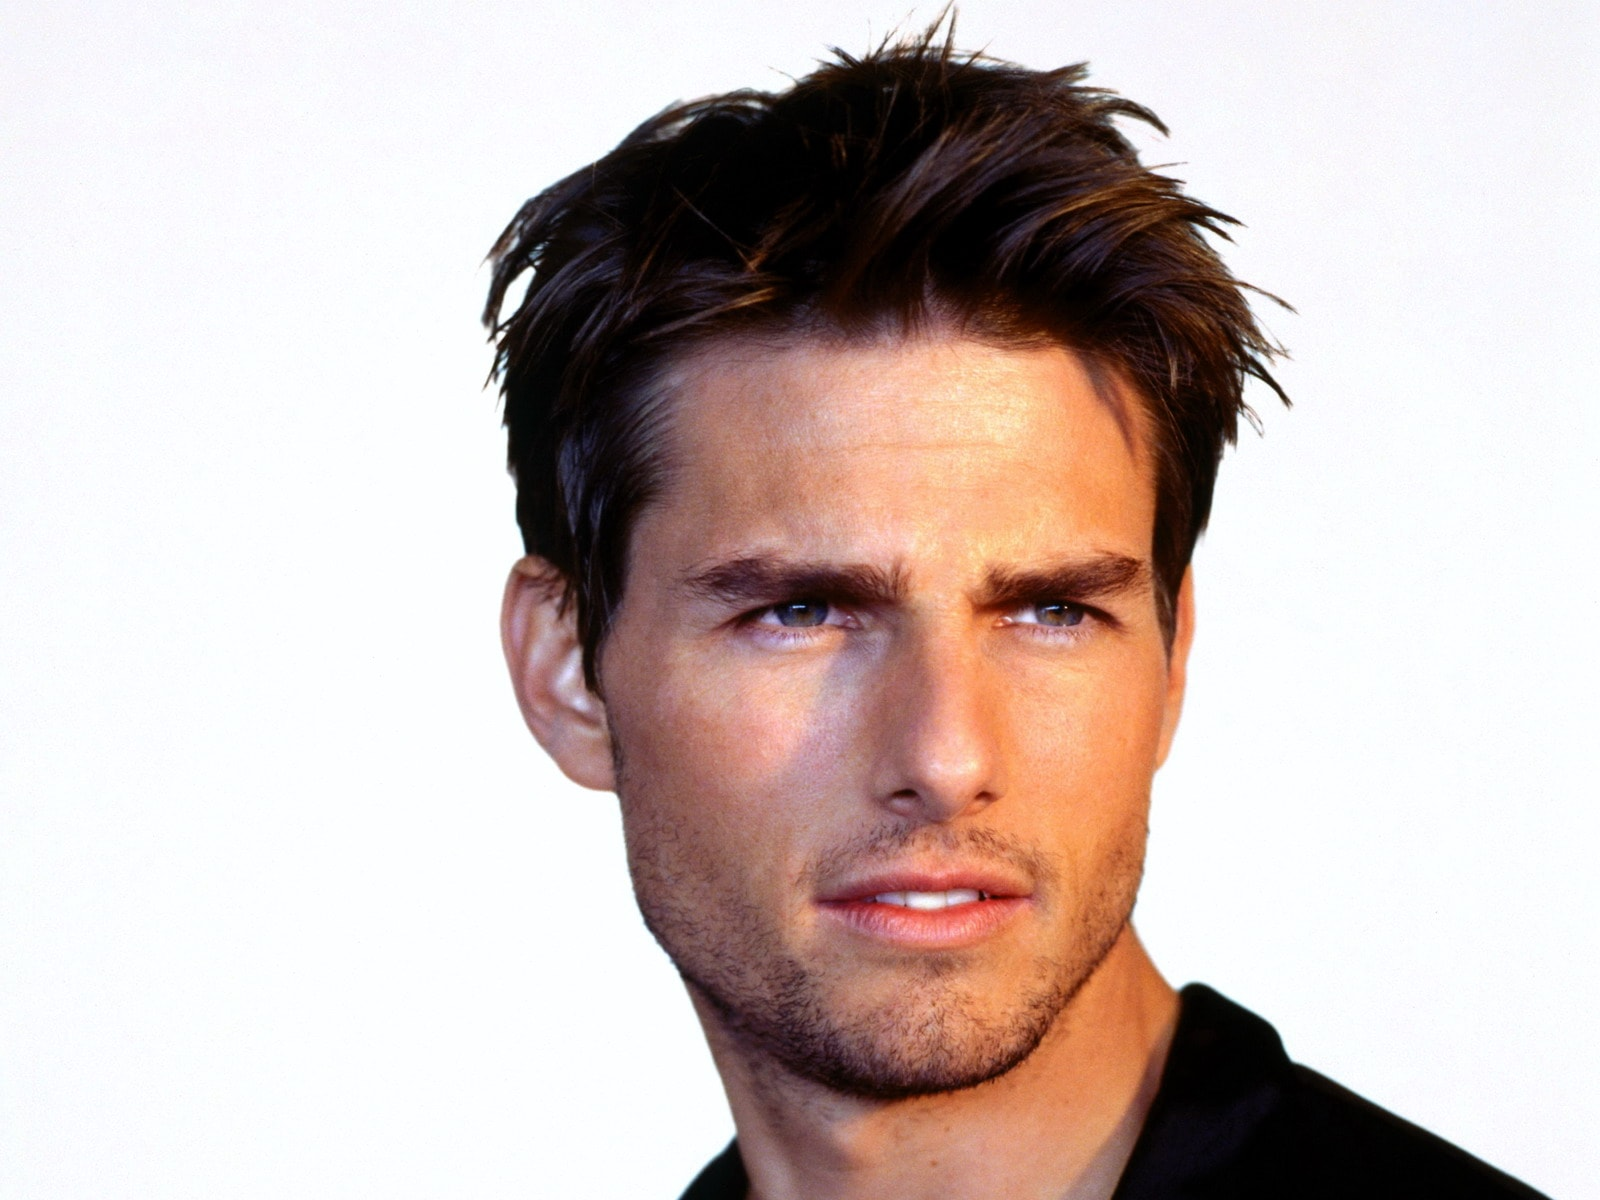 Tom Cruise desktop wallpaper